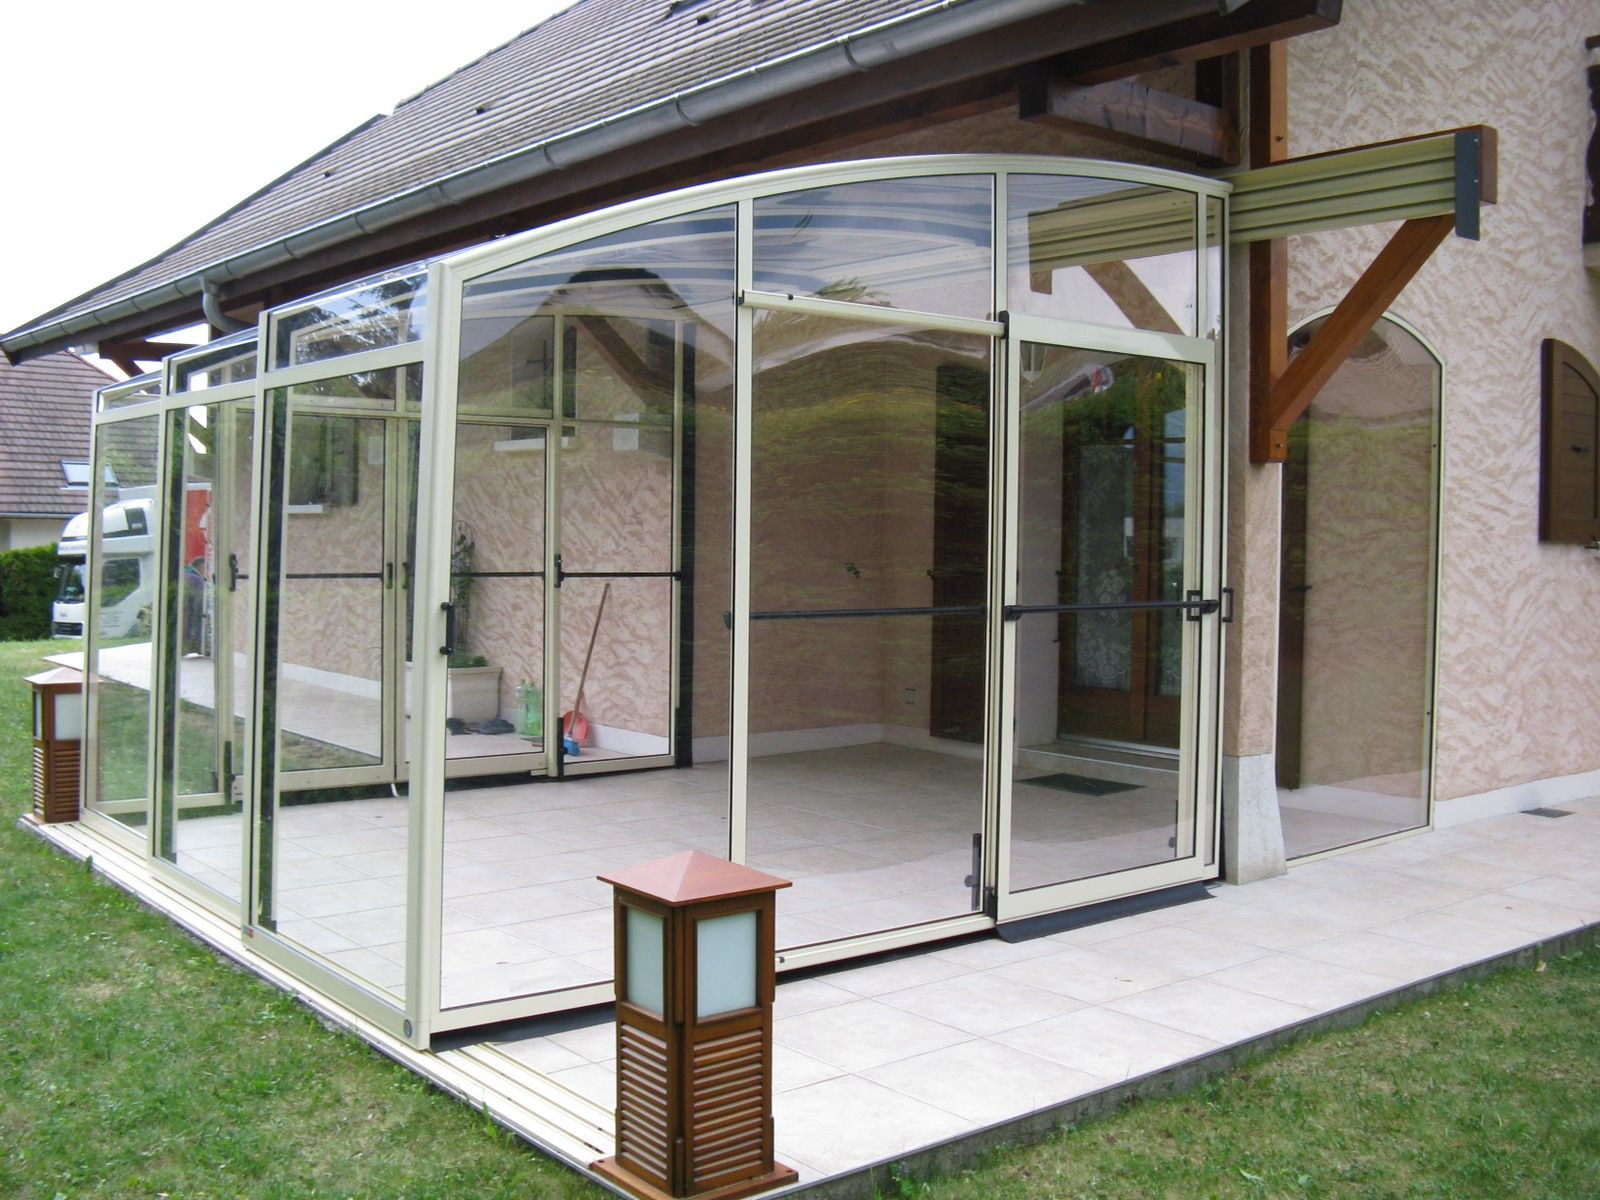 Patio cover CORSO this cover is retractable you can open and